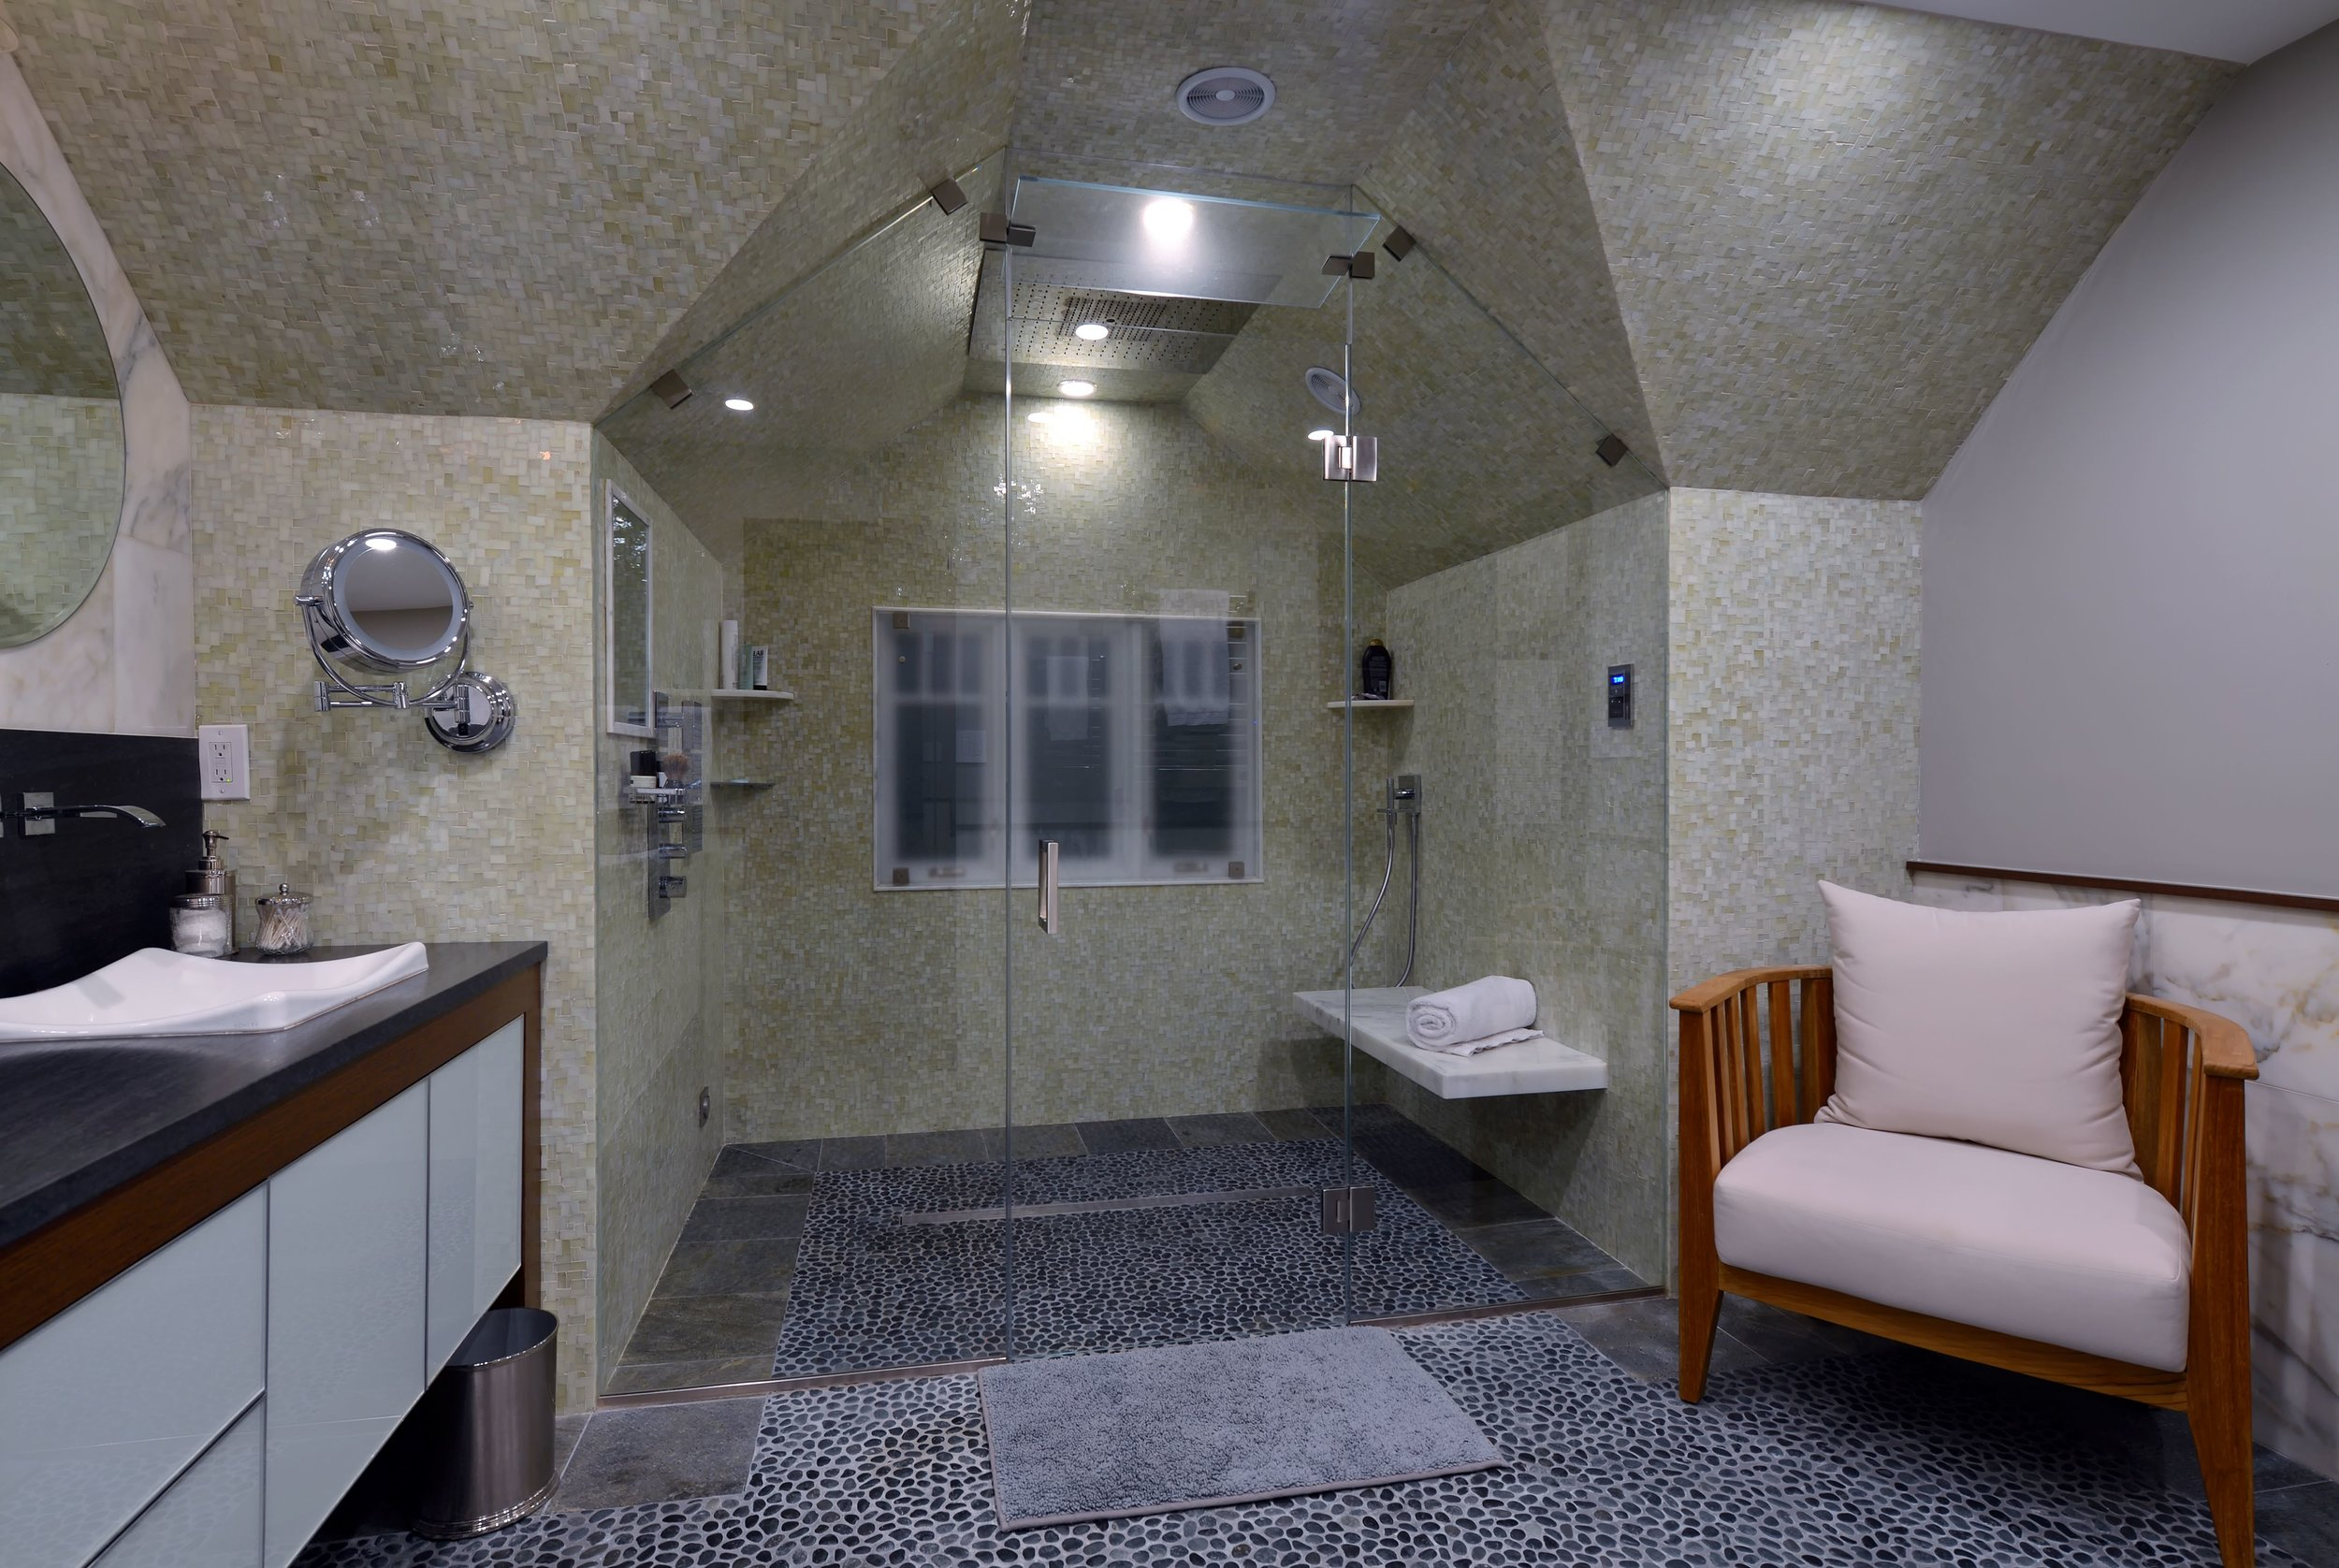 Large bathroom with peaked ceiling and glass walled shower with seat